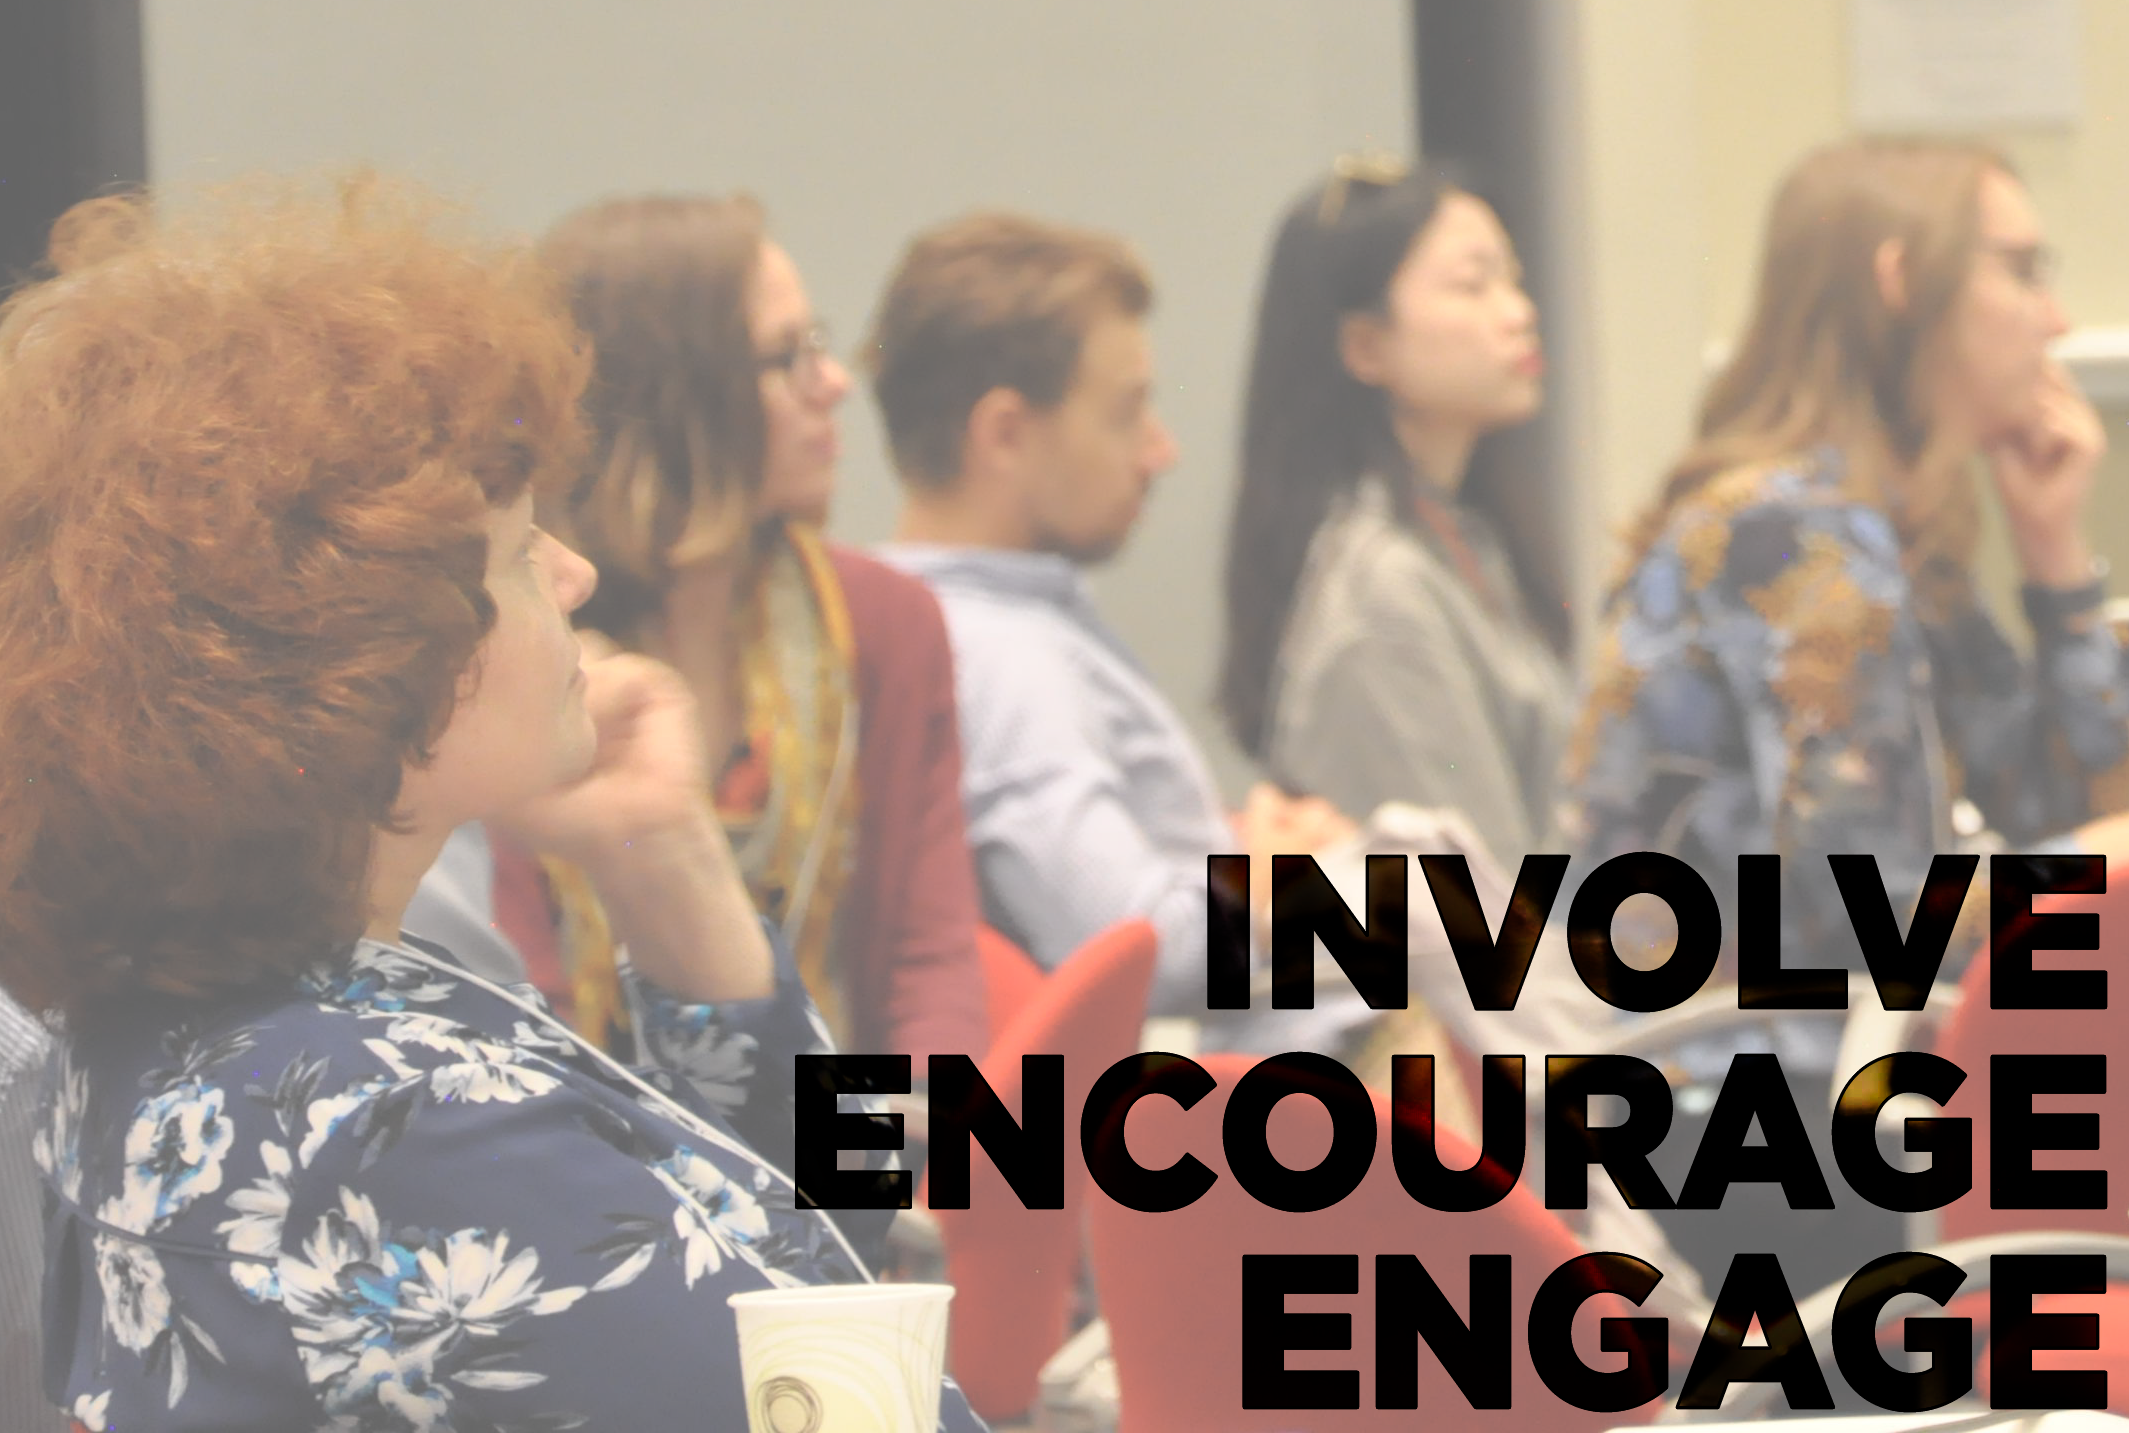 Picture of meeting participants with the words INVOLVE, ENCOURAGE, ENGAGE overlaid